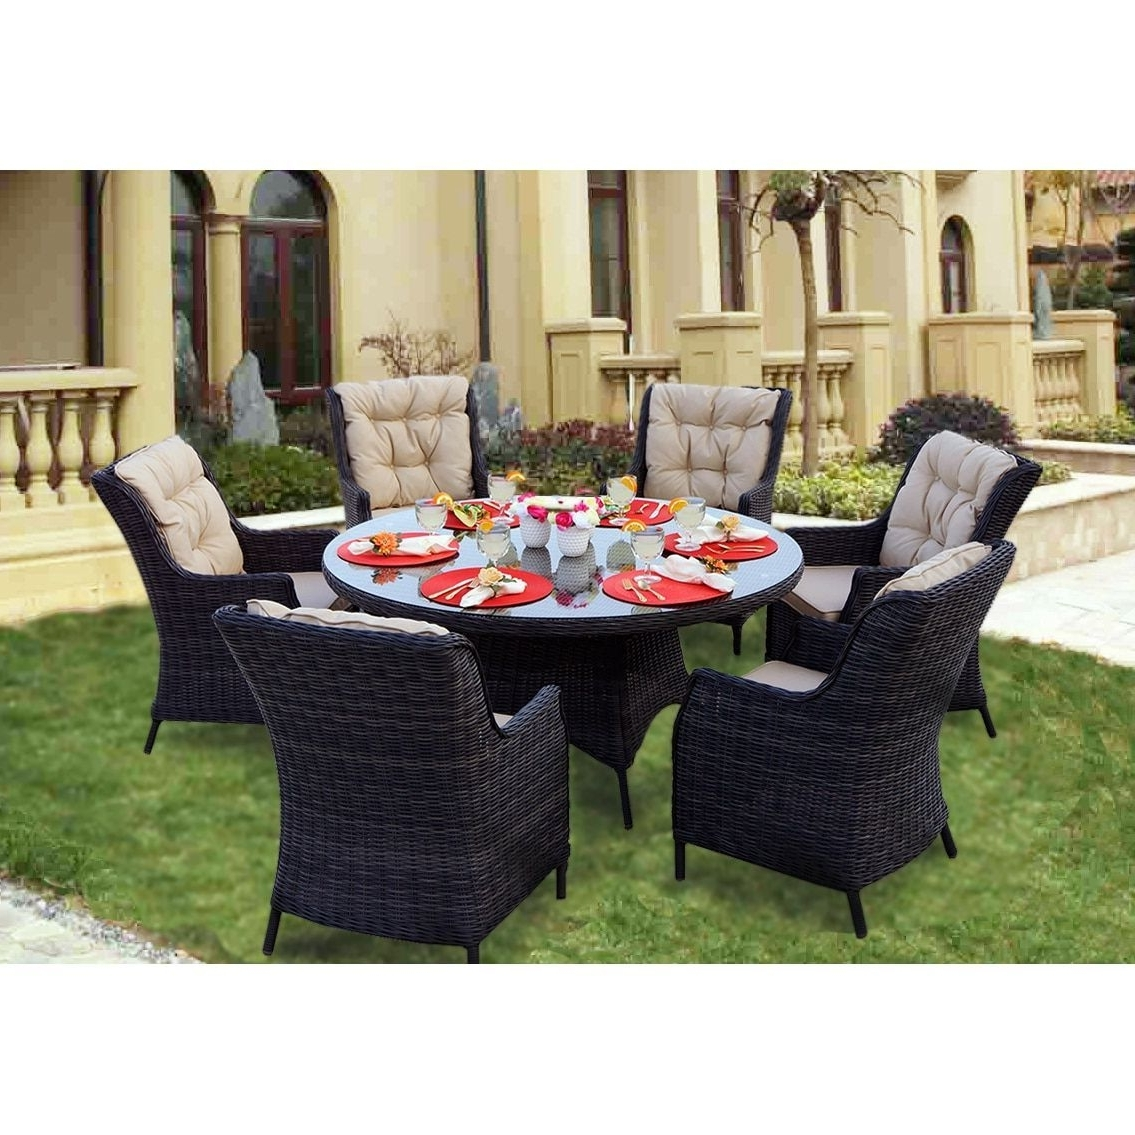 Valencia 60 Inch Round Dining Tables Regarding Popular Darlee Valencia Charcoal (Grey) Wicker 7 Piece Dining Set With (View 12 of 25)